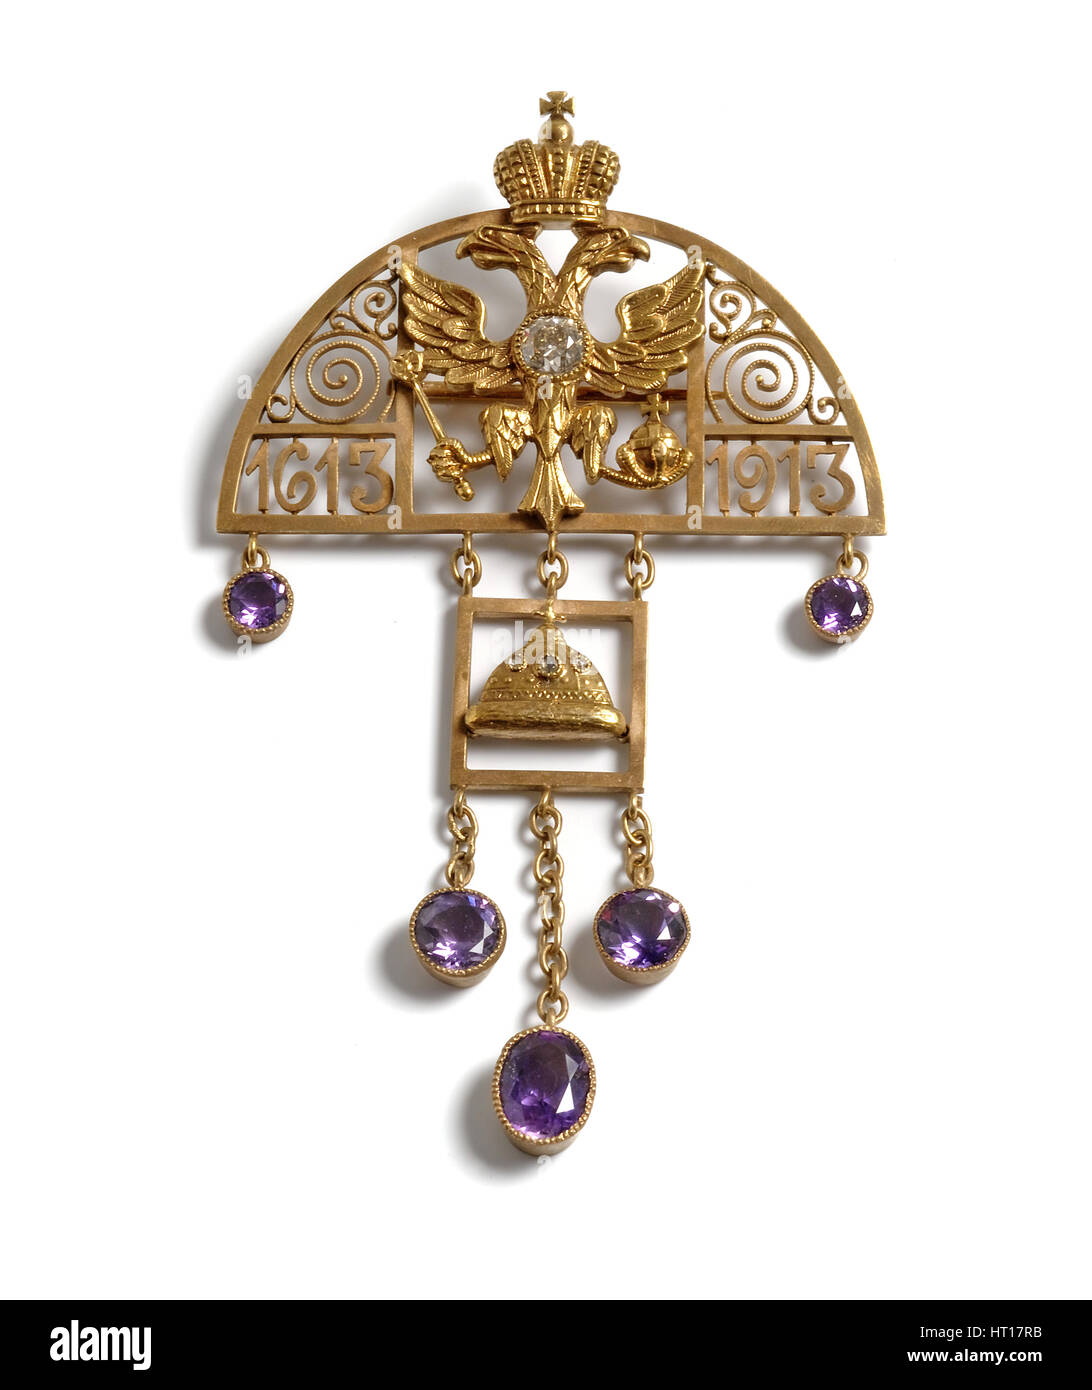 Pendant to the 300th Anniversary of the Romanov Dynasty, 1913. Artist: Holmström, Albert, (Fabergé manufacture) - Stock Image